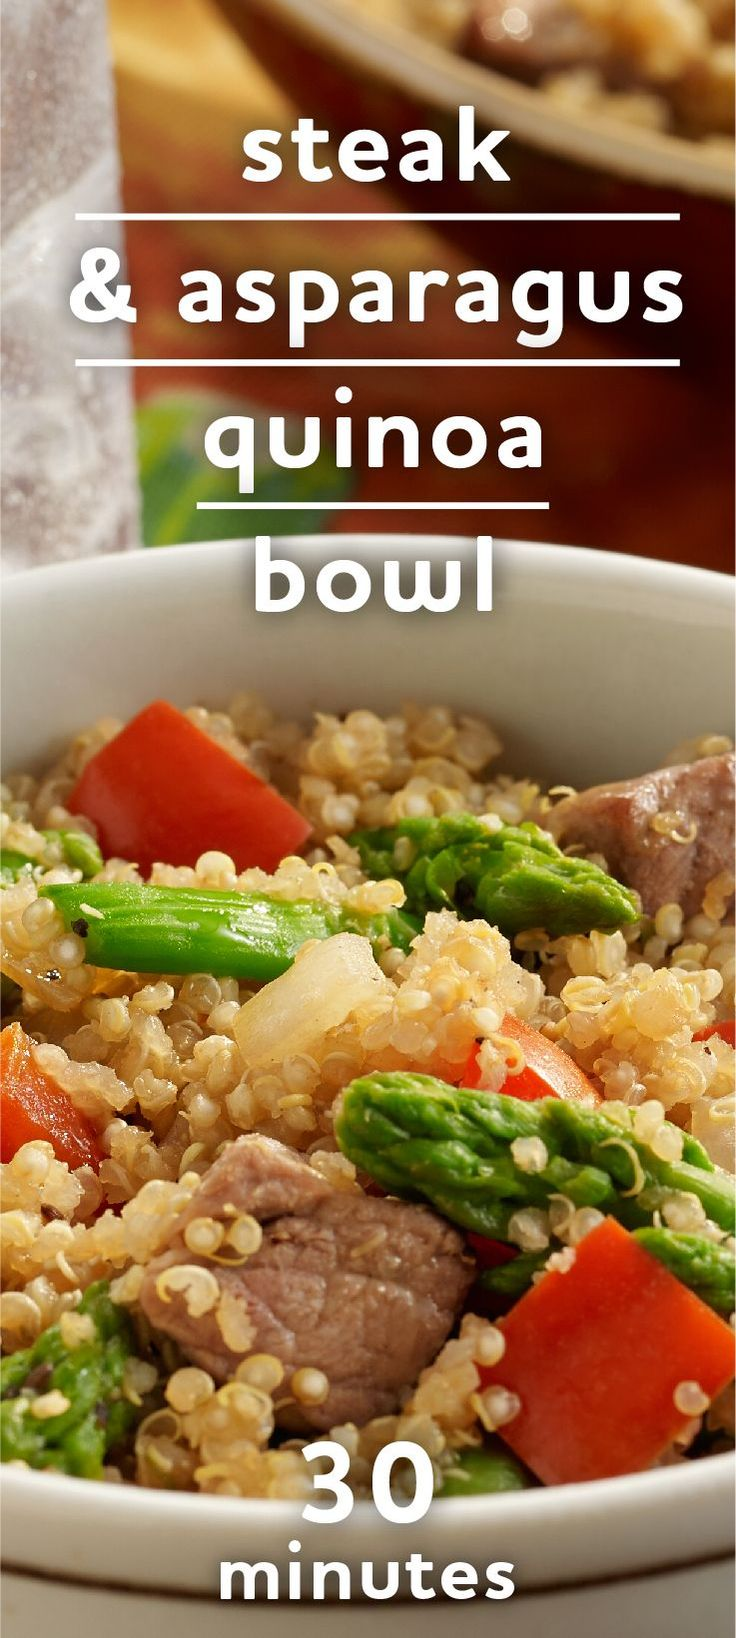 Steak and Asparagus Quinoa Bowl | Easy quinoa recipe combines cooked quinoa with tender pieces of beef, asparagus and bell pepper for a healthier main dish